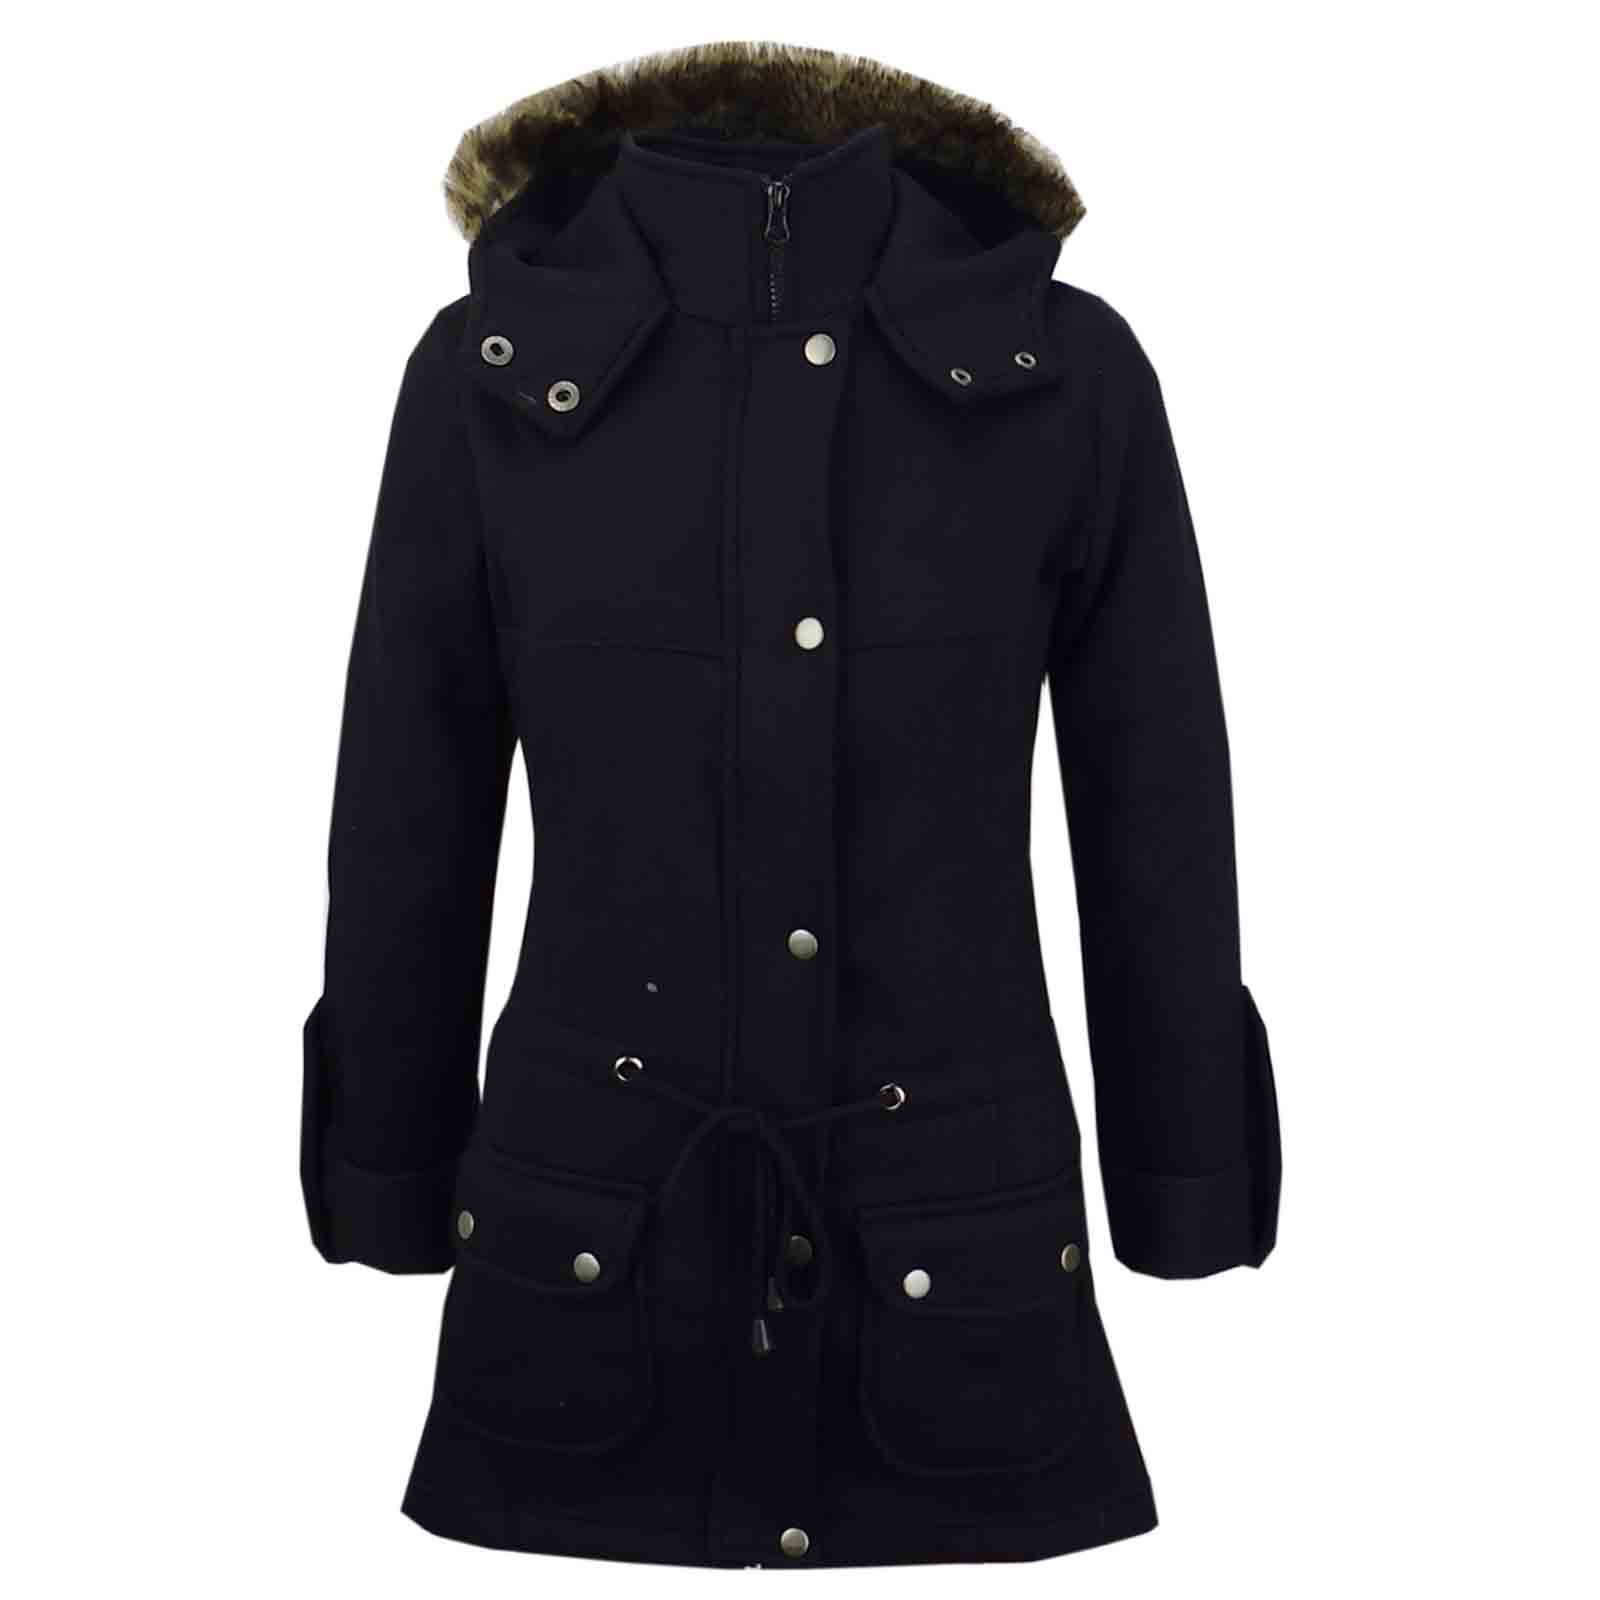 Find great deals on eBay for girl fleece jacket. Shop with confidence.